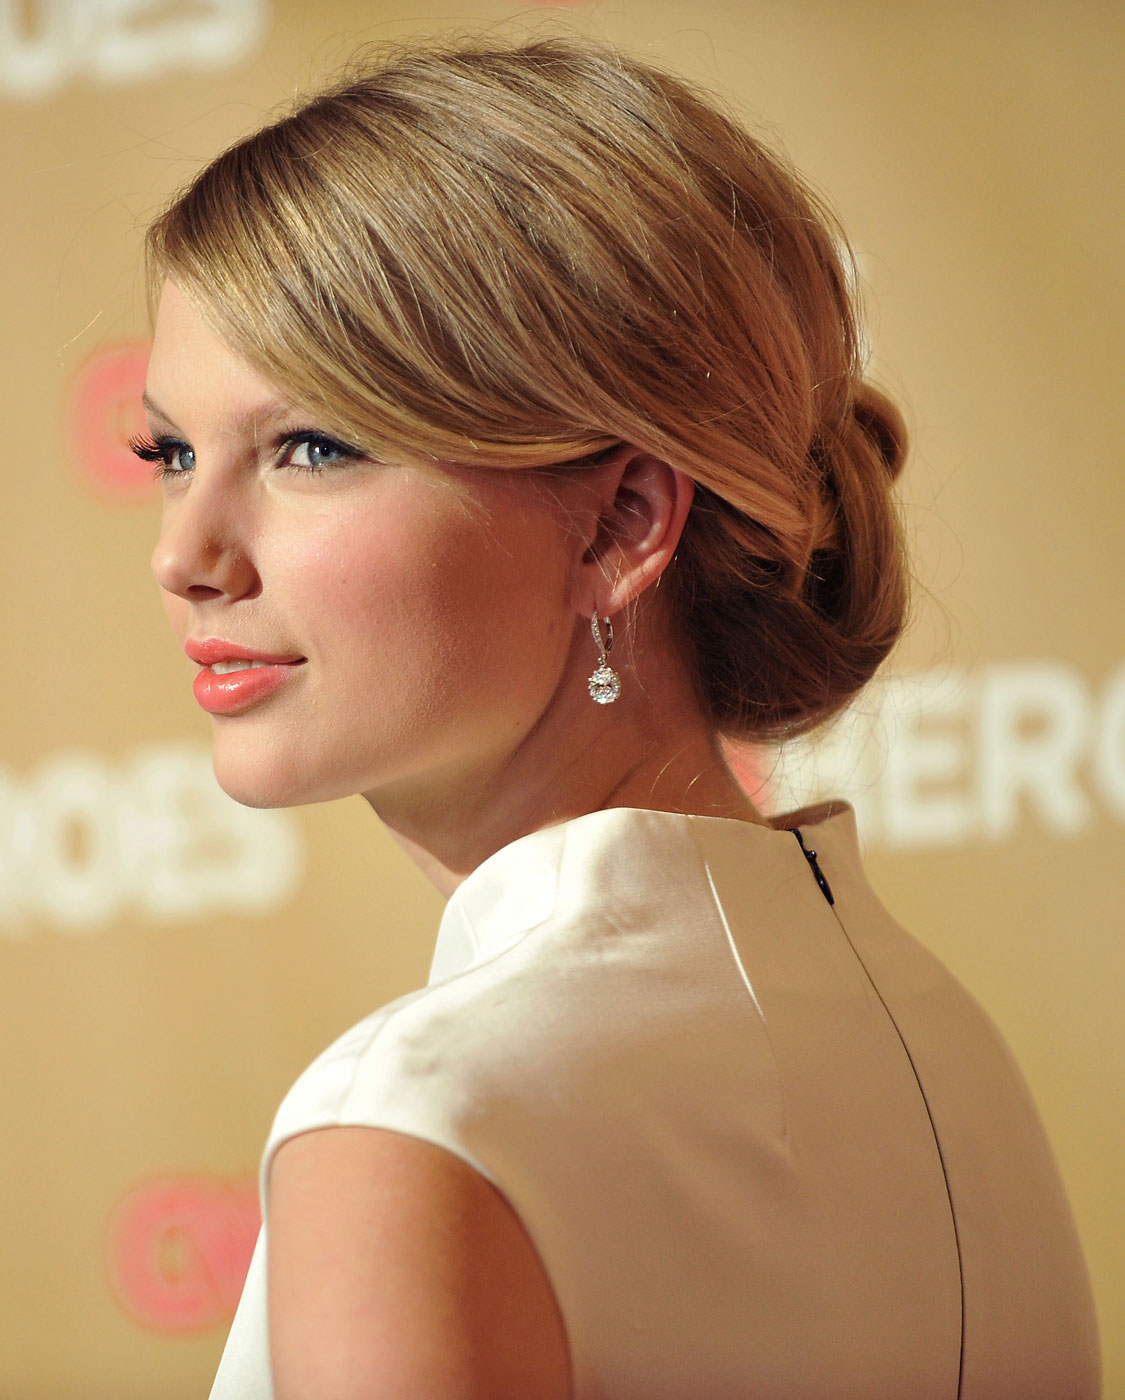 Singer Taylor Swift arrives at CNN Heroes: An All-Star Tribute at the Kodak Theatre in Hollywood, California in 2008.